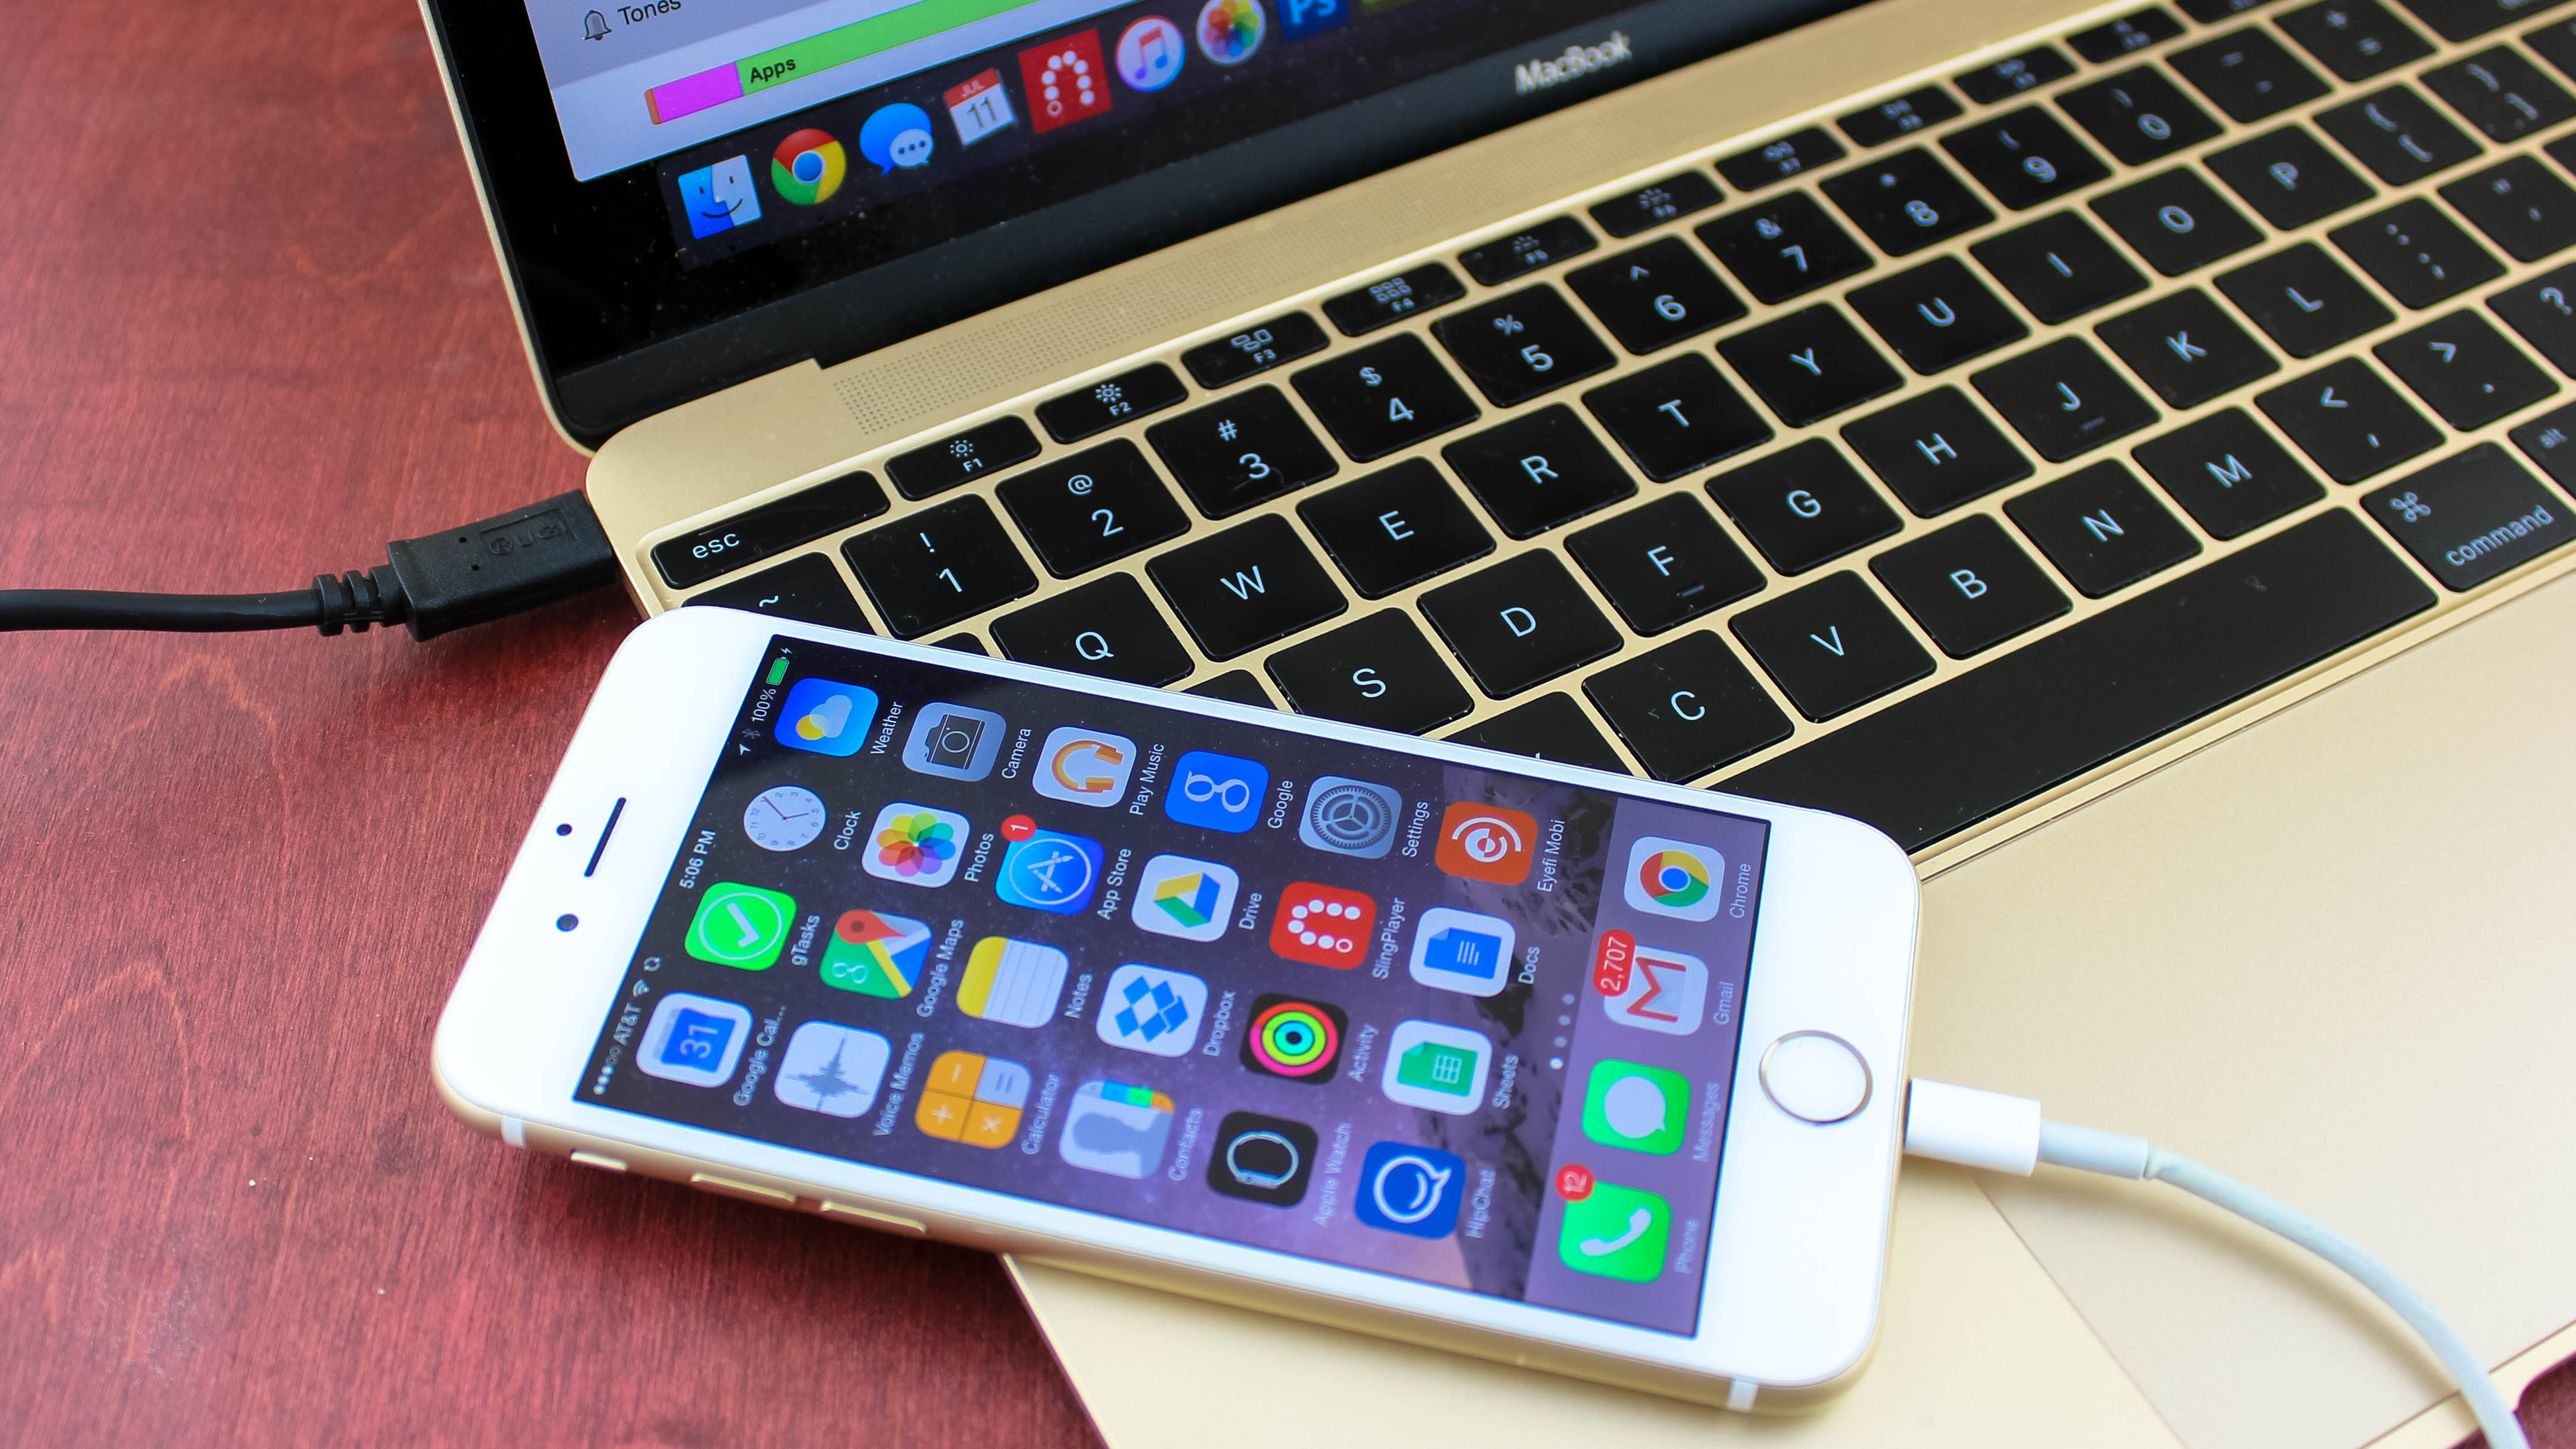 iOS 12: new features and the iOS 12 1 release date - Warpcom